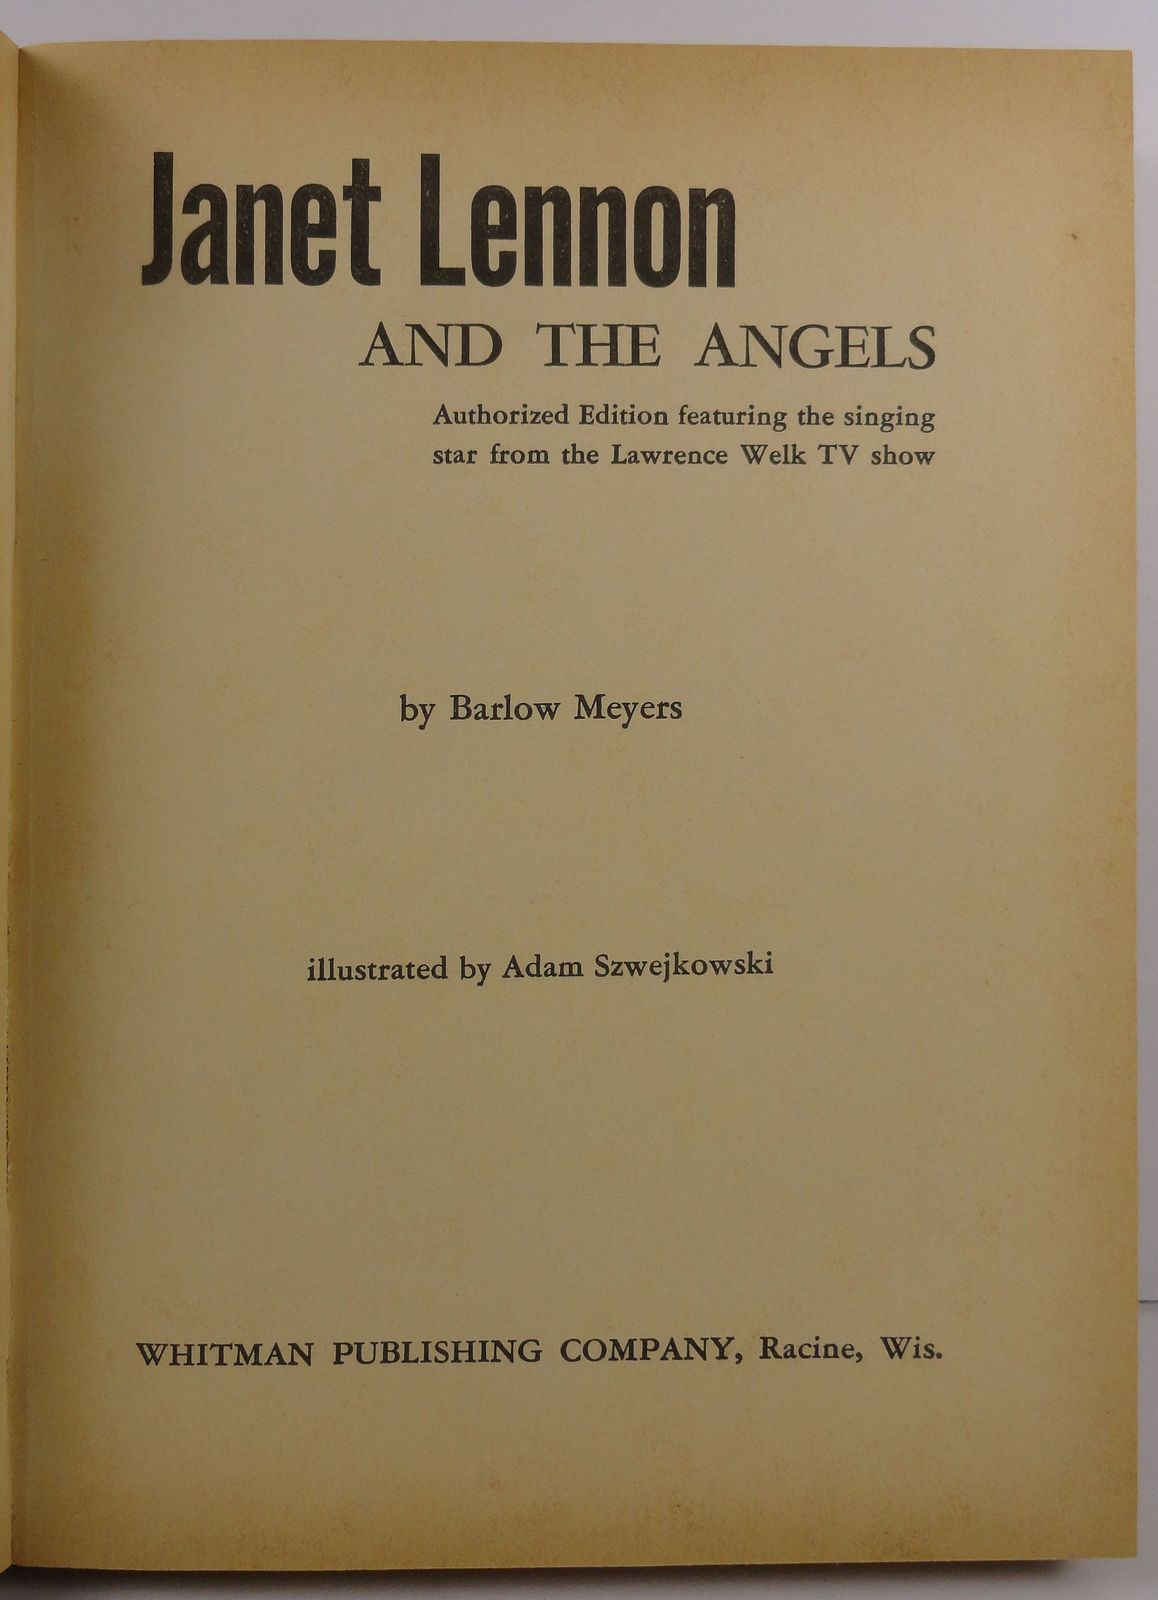 Janet Lennon and the Angels by Barlow Meyers 1963 Whitman